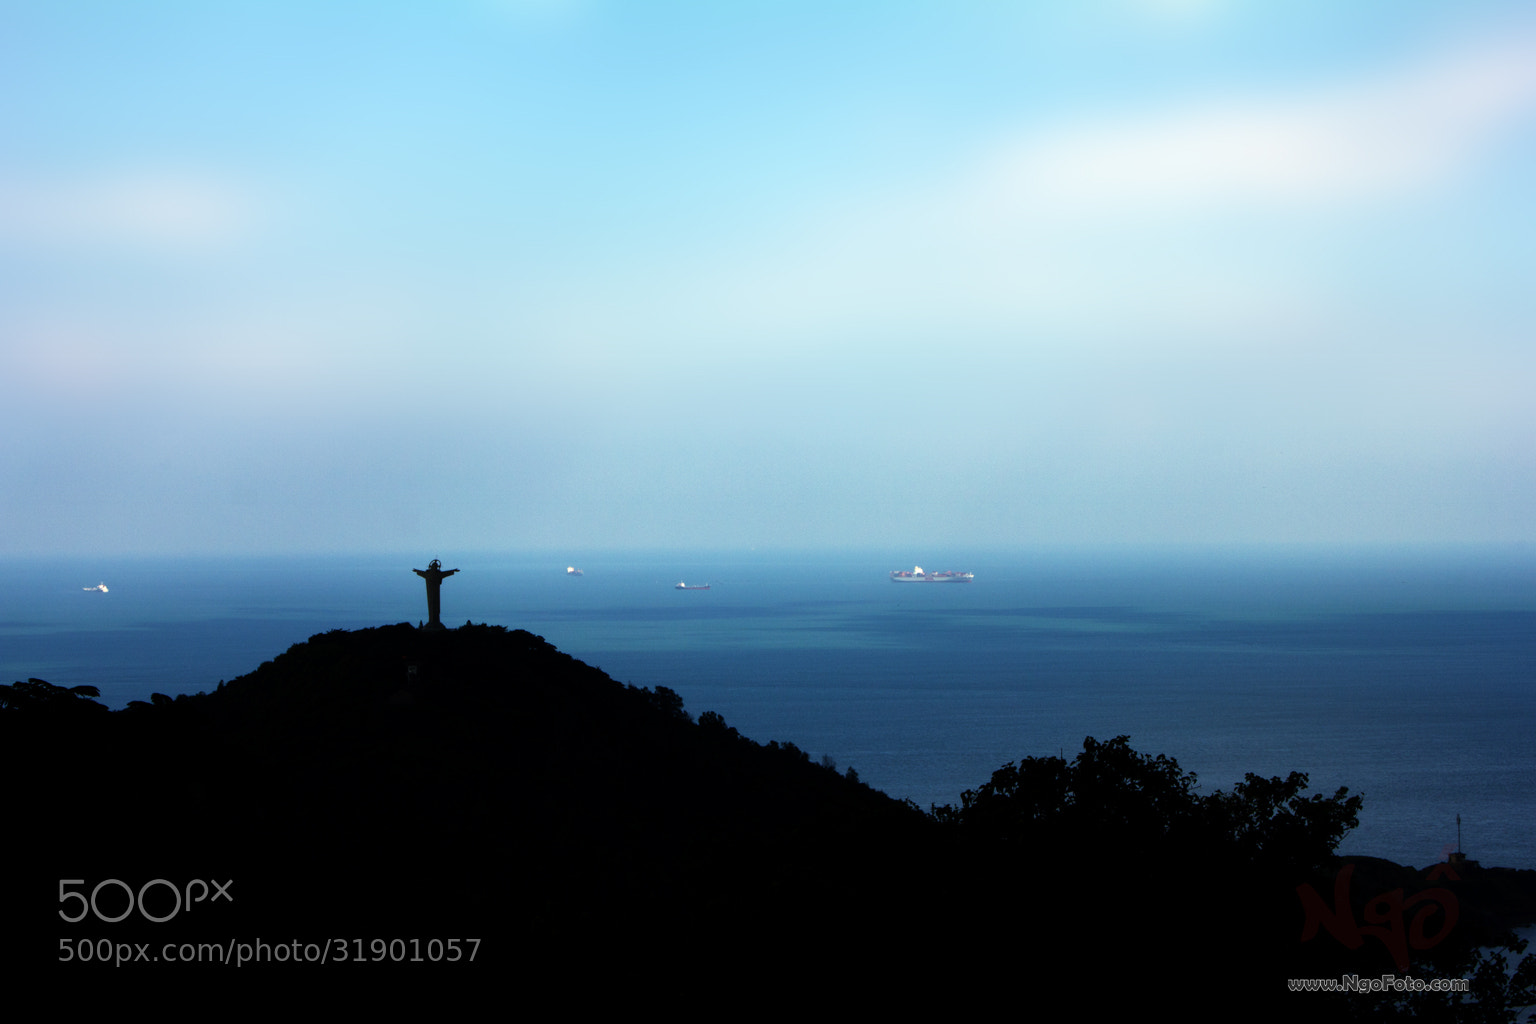 Photograph going to rain in Vung Tau by [Ngố] Photo on 500px